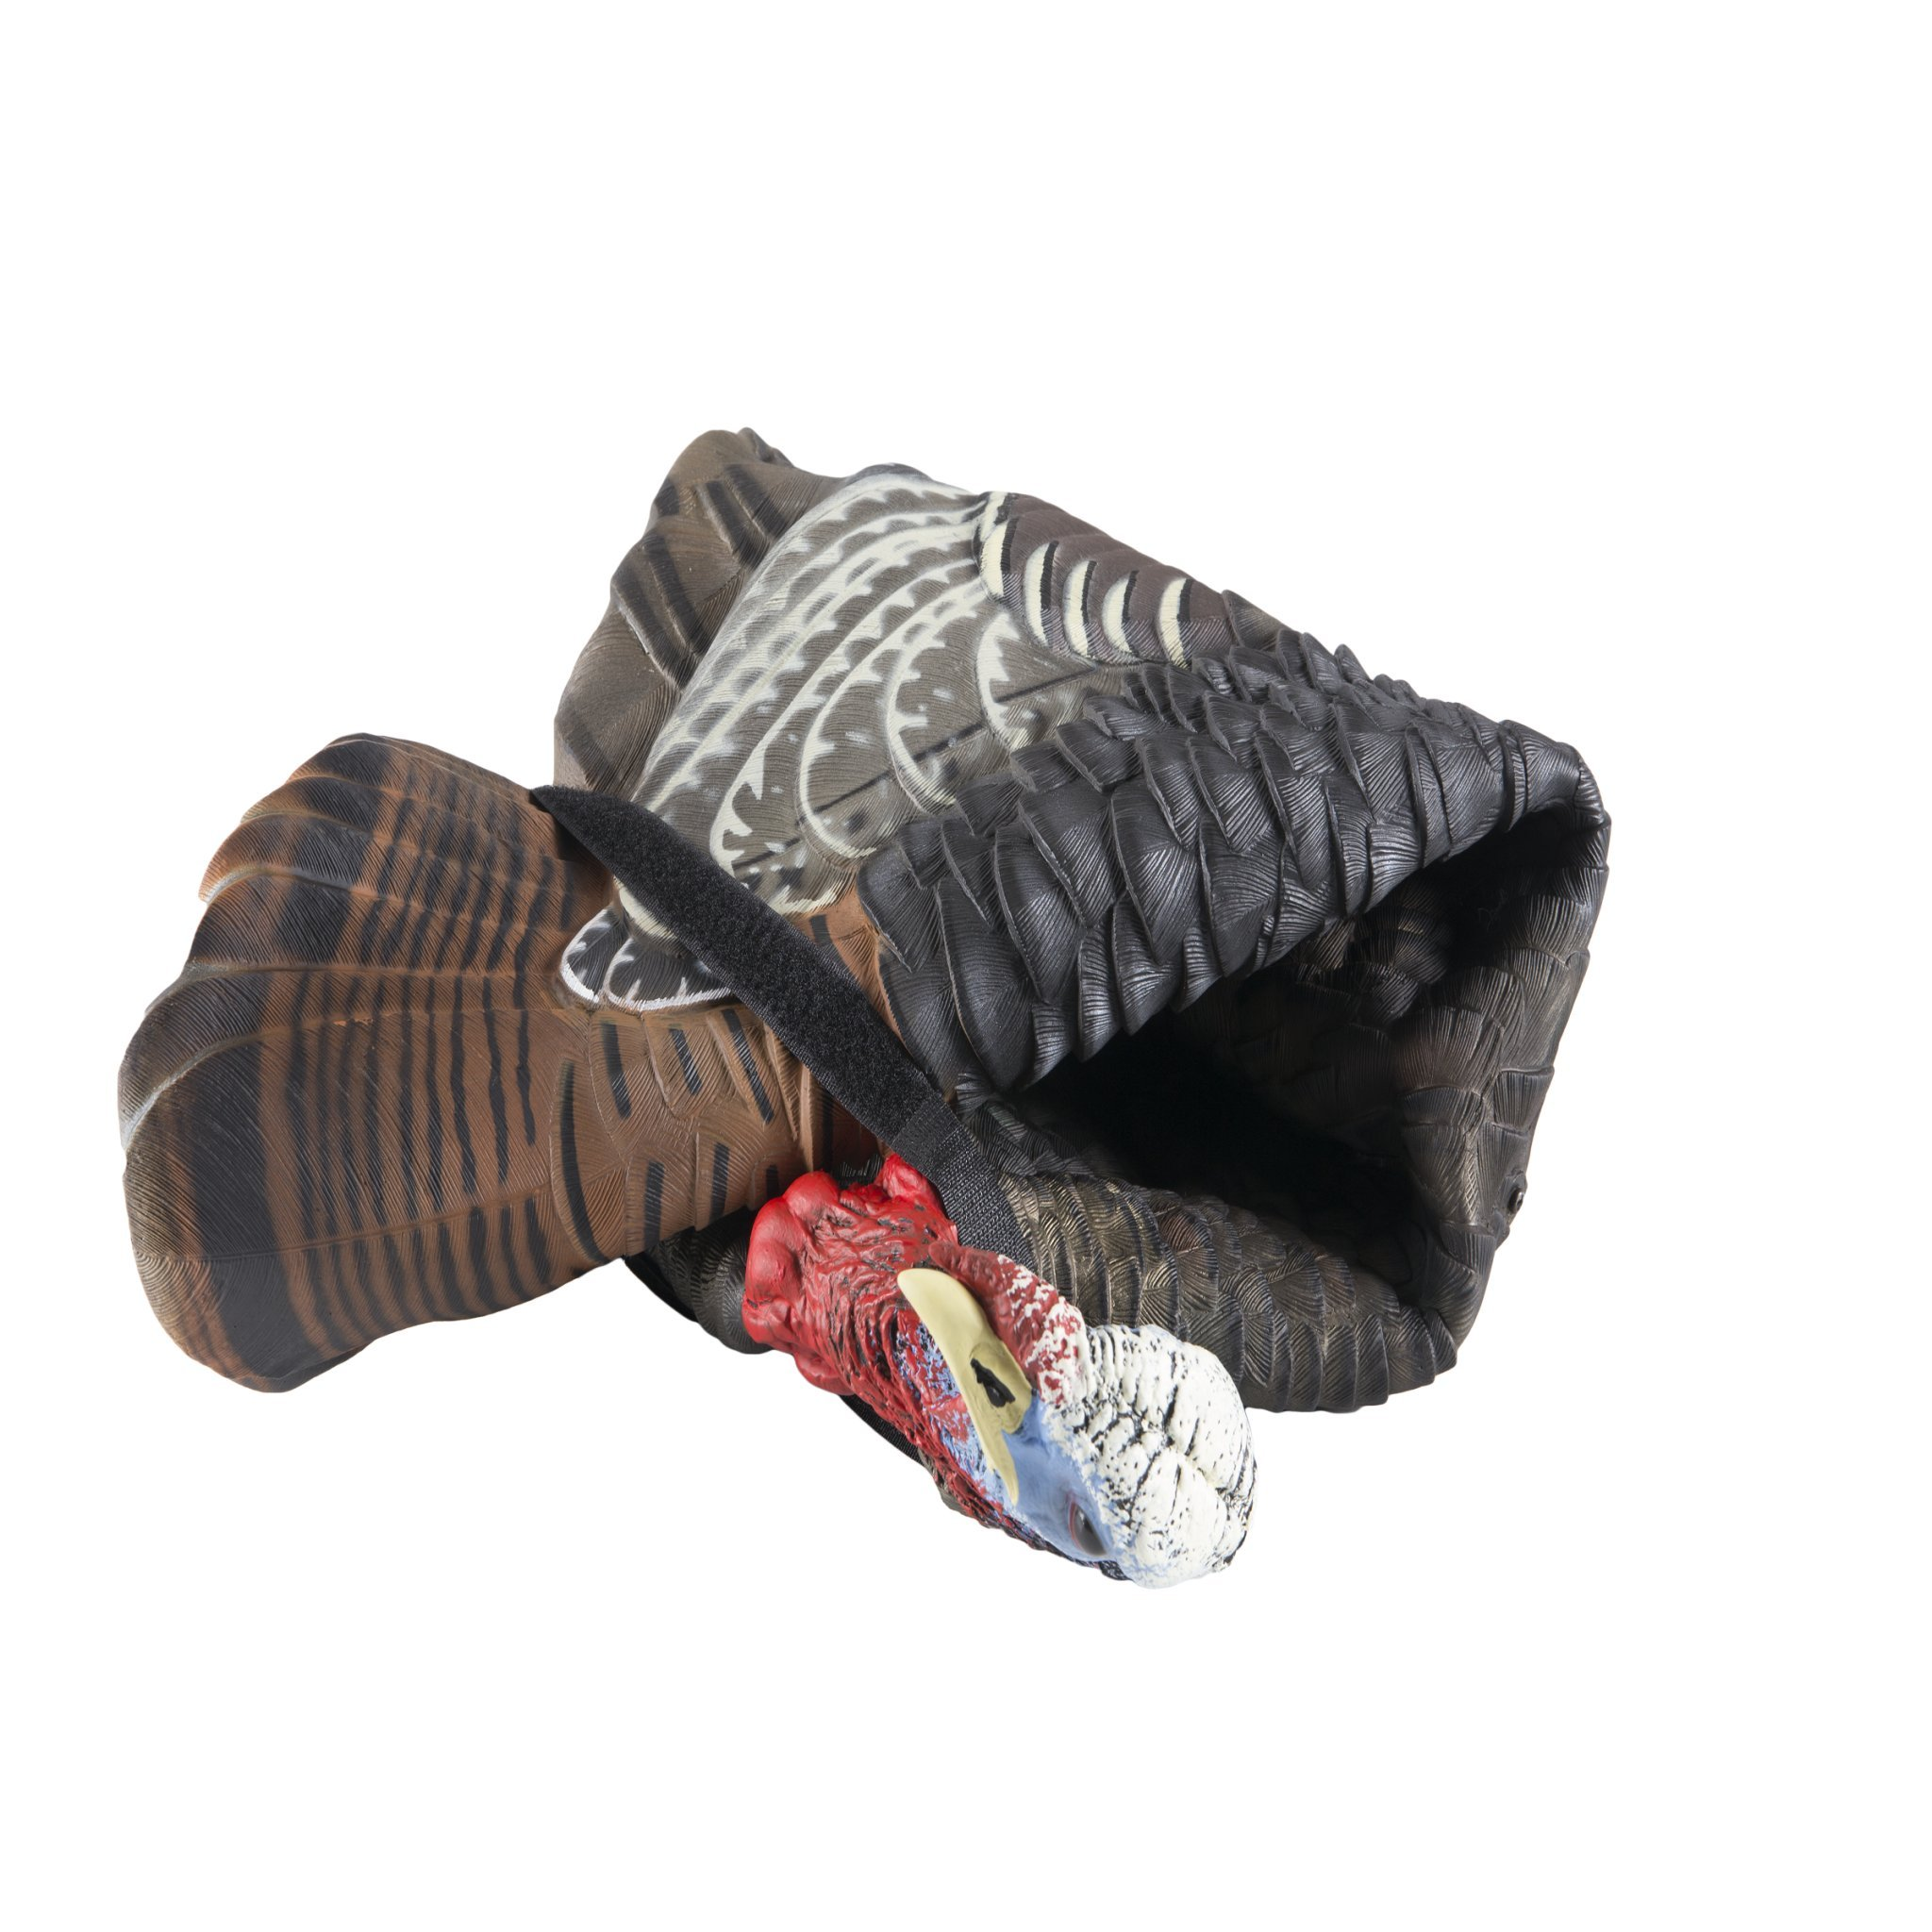 AvianX Jake Quarter Strut Decoy, Camo